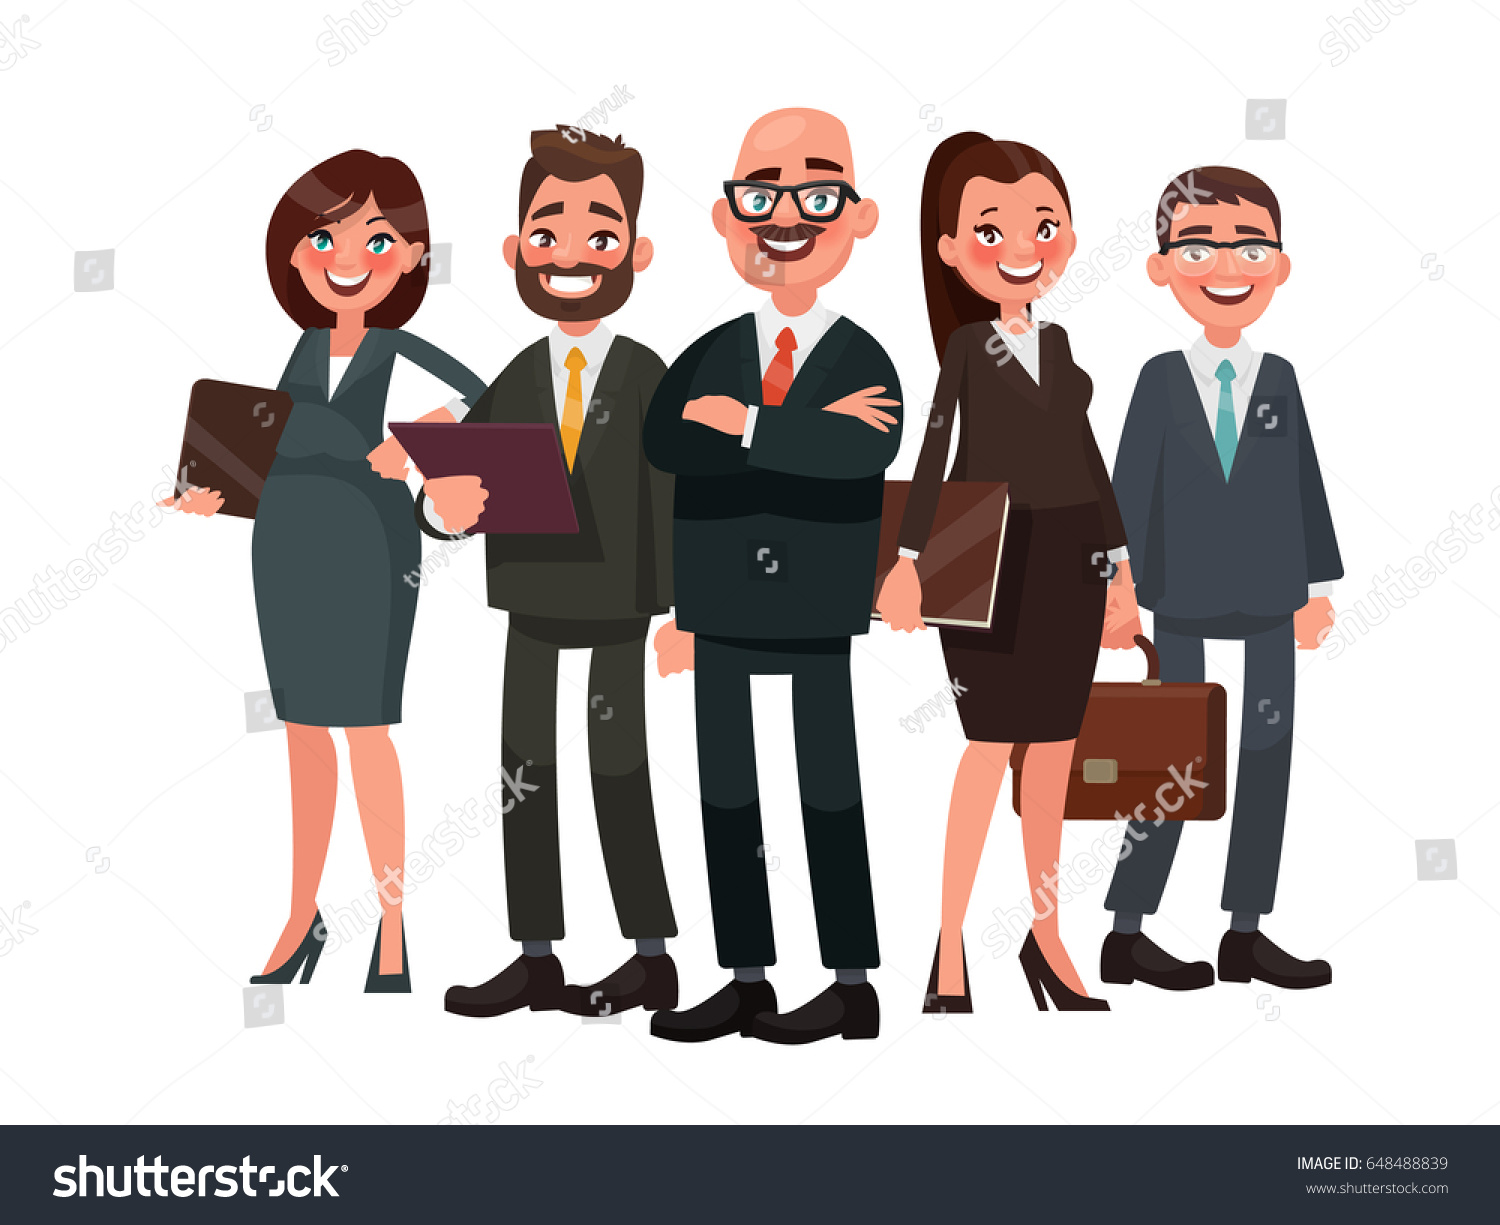 Business team cartoon characters cartoon vector cartoondealer com - Business People Are Led By A Leader Vector Illustration In Cartoon Style